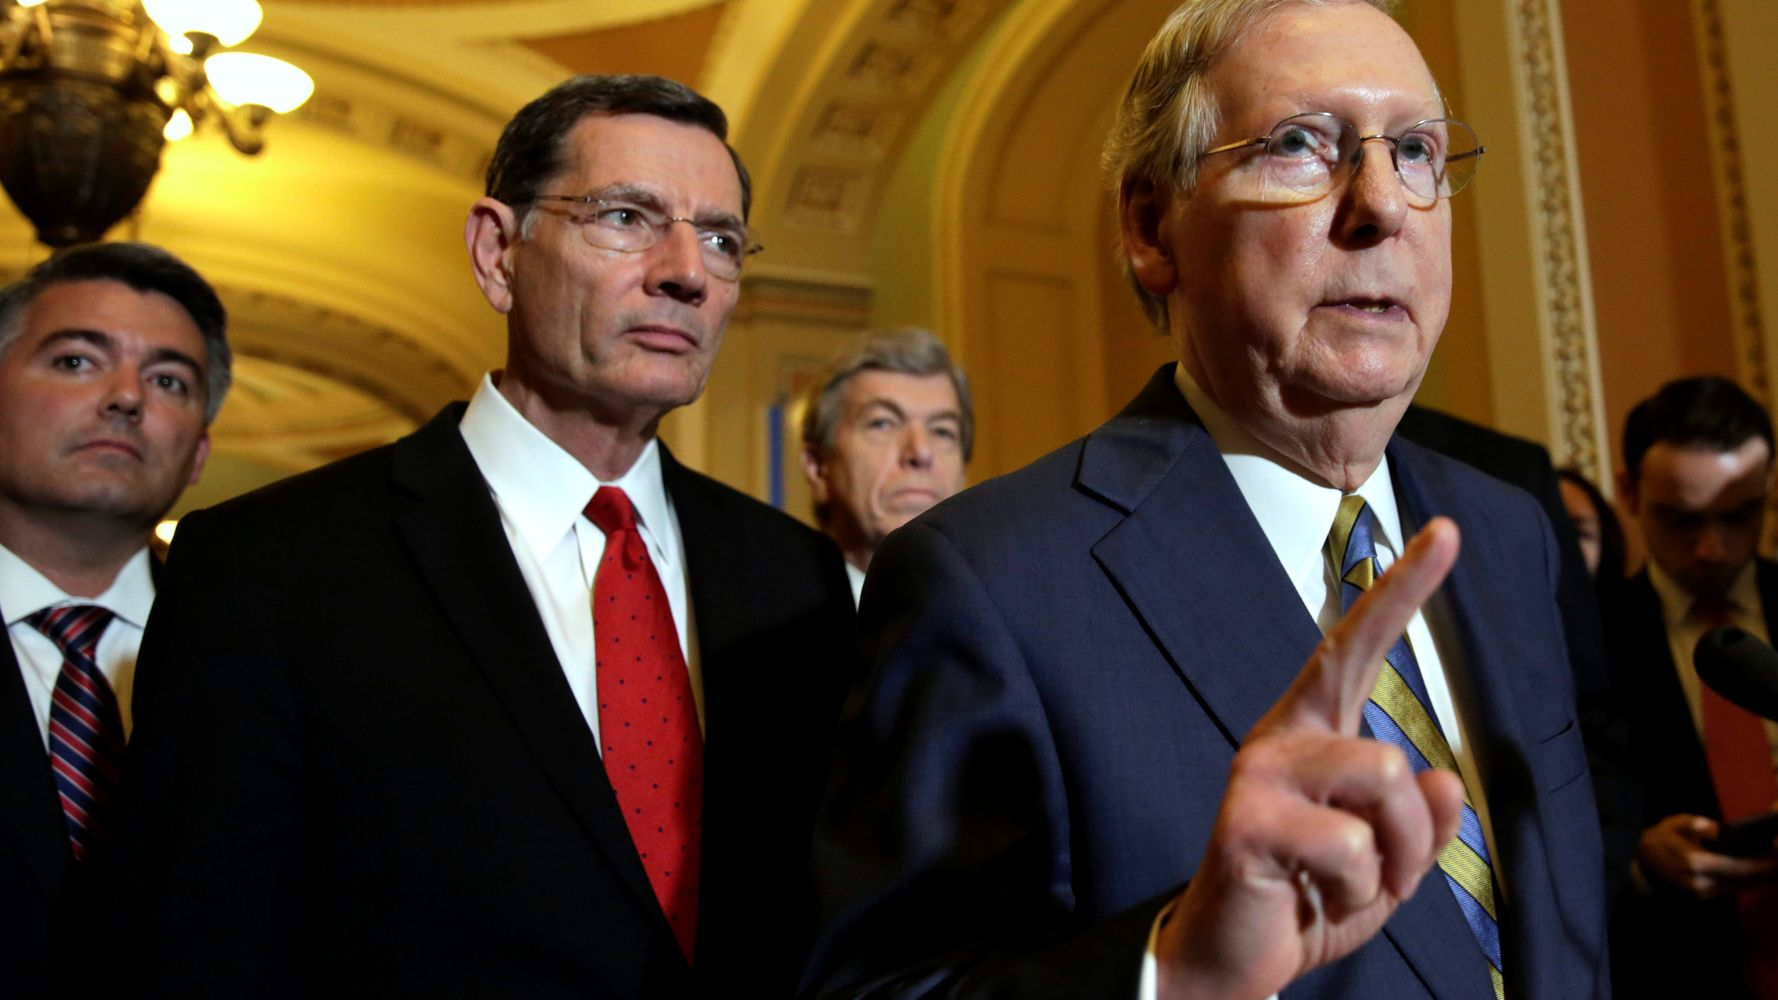 Senate Republicans Said Their Bill Wouldn't Hurt The Poor. It Would.